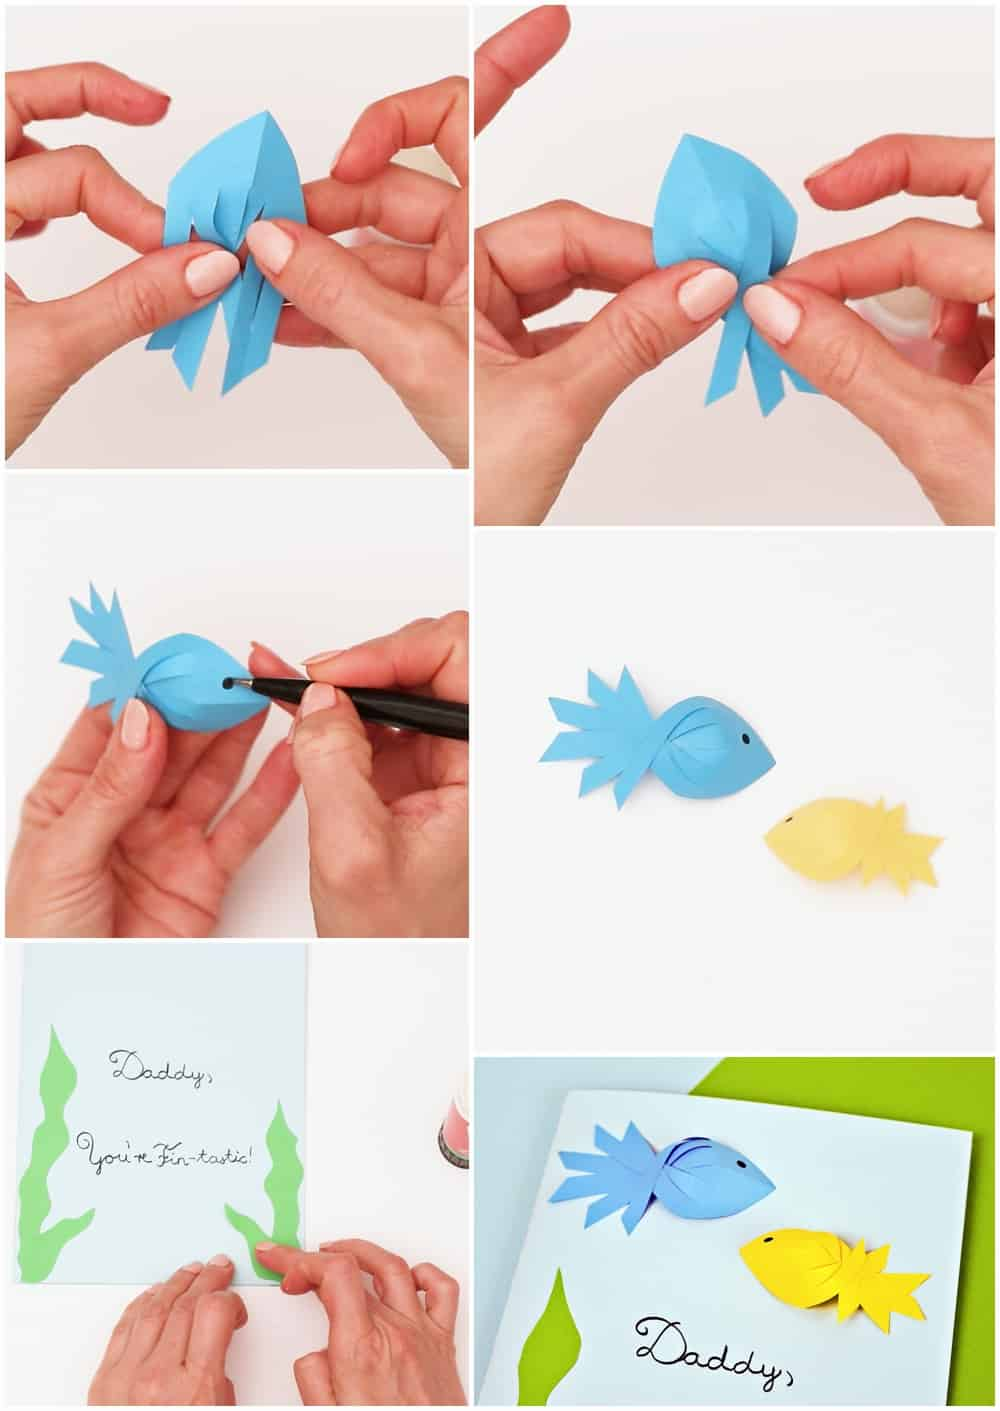 Process photos of how to make 3D paper fish for a father's day card